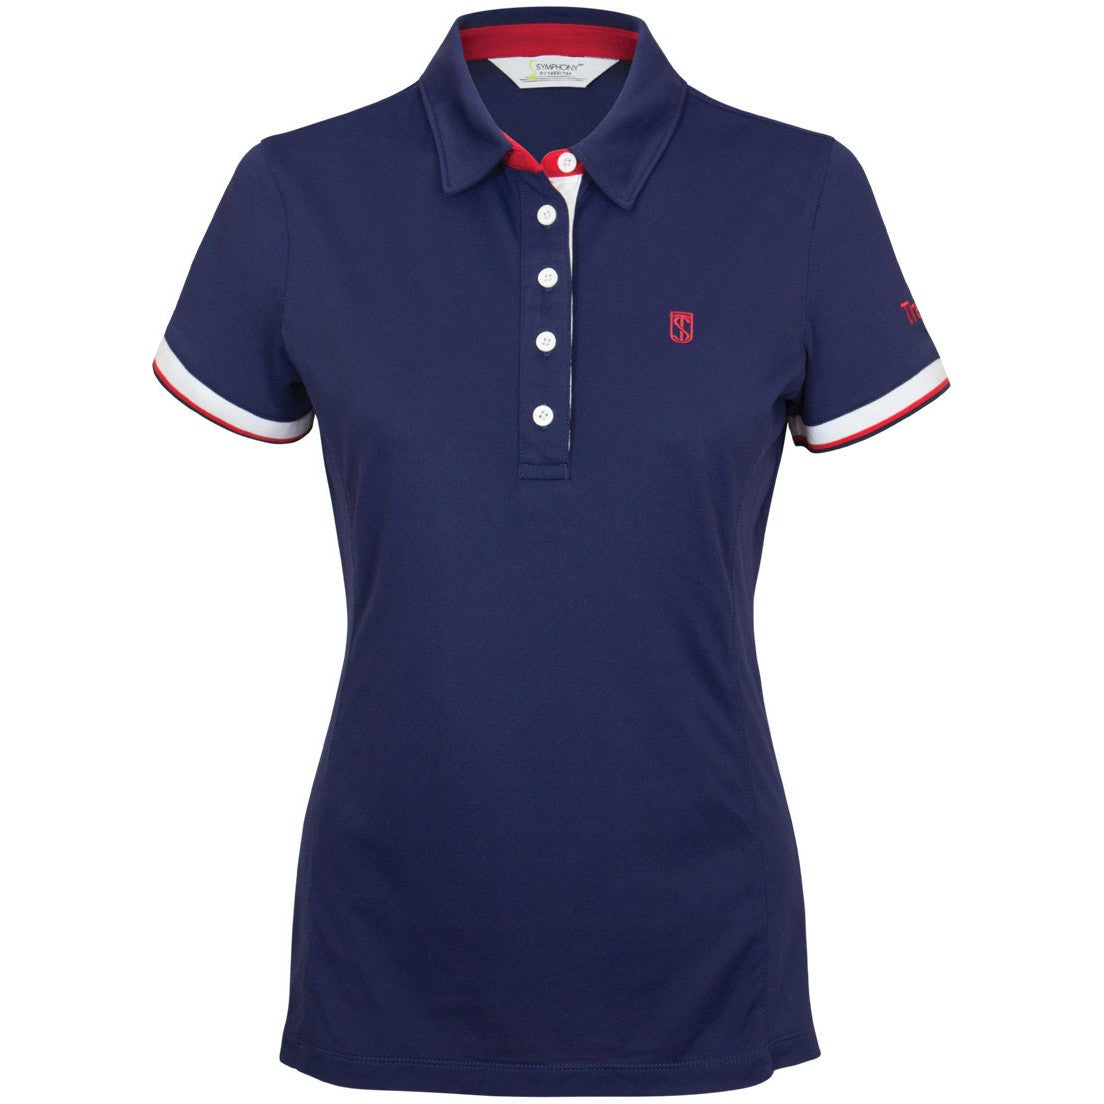 Tredstep Performance Womens T Shirt Polo Shirt Navy Red White All